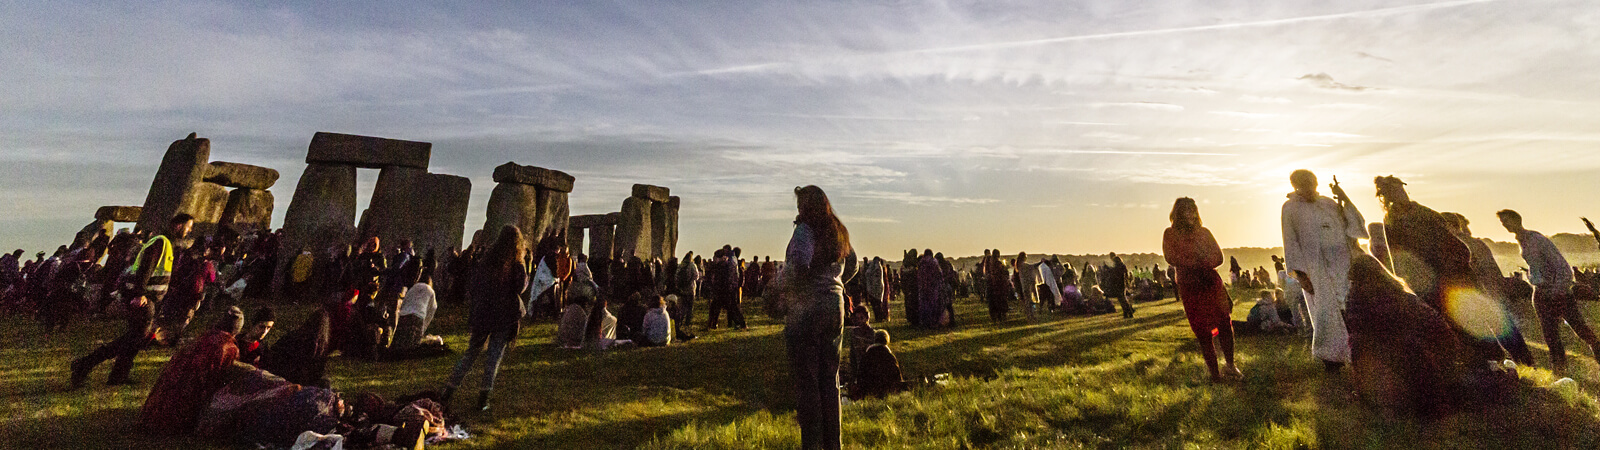 Experiencing The Stonehenge Summer Solstice